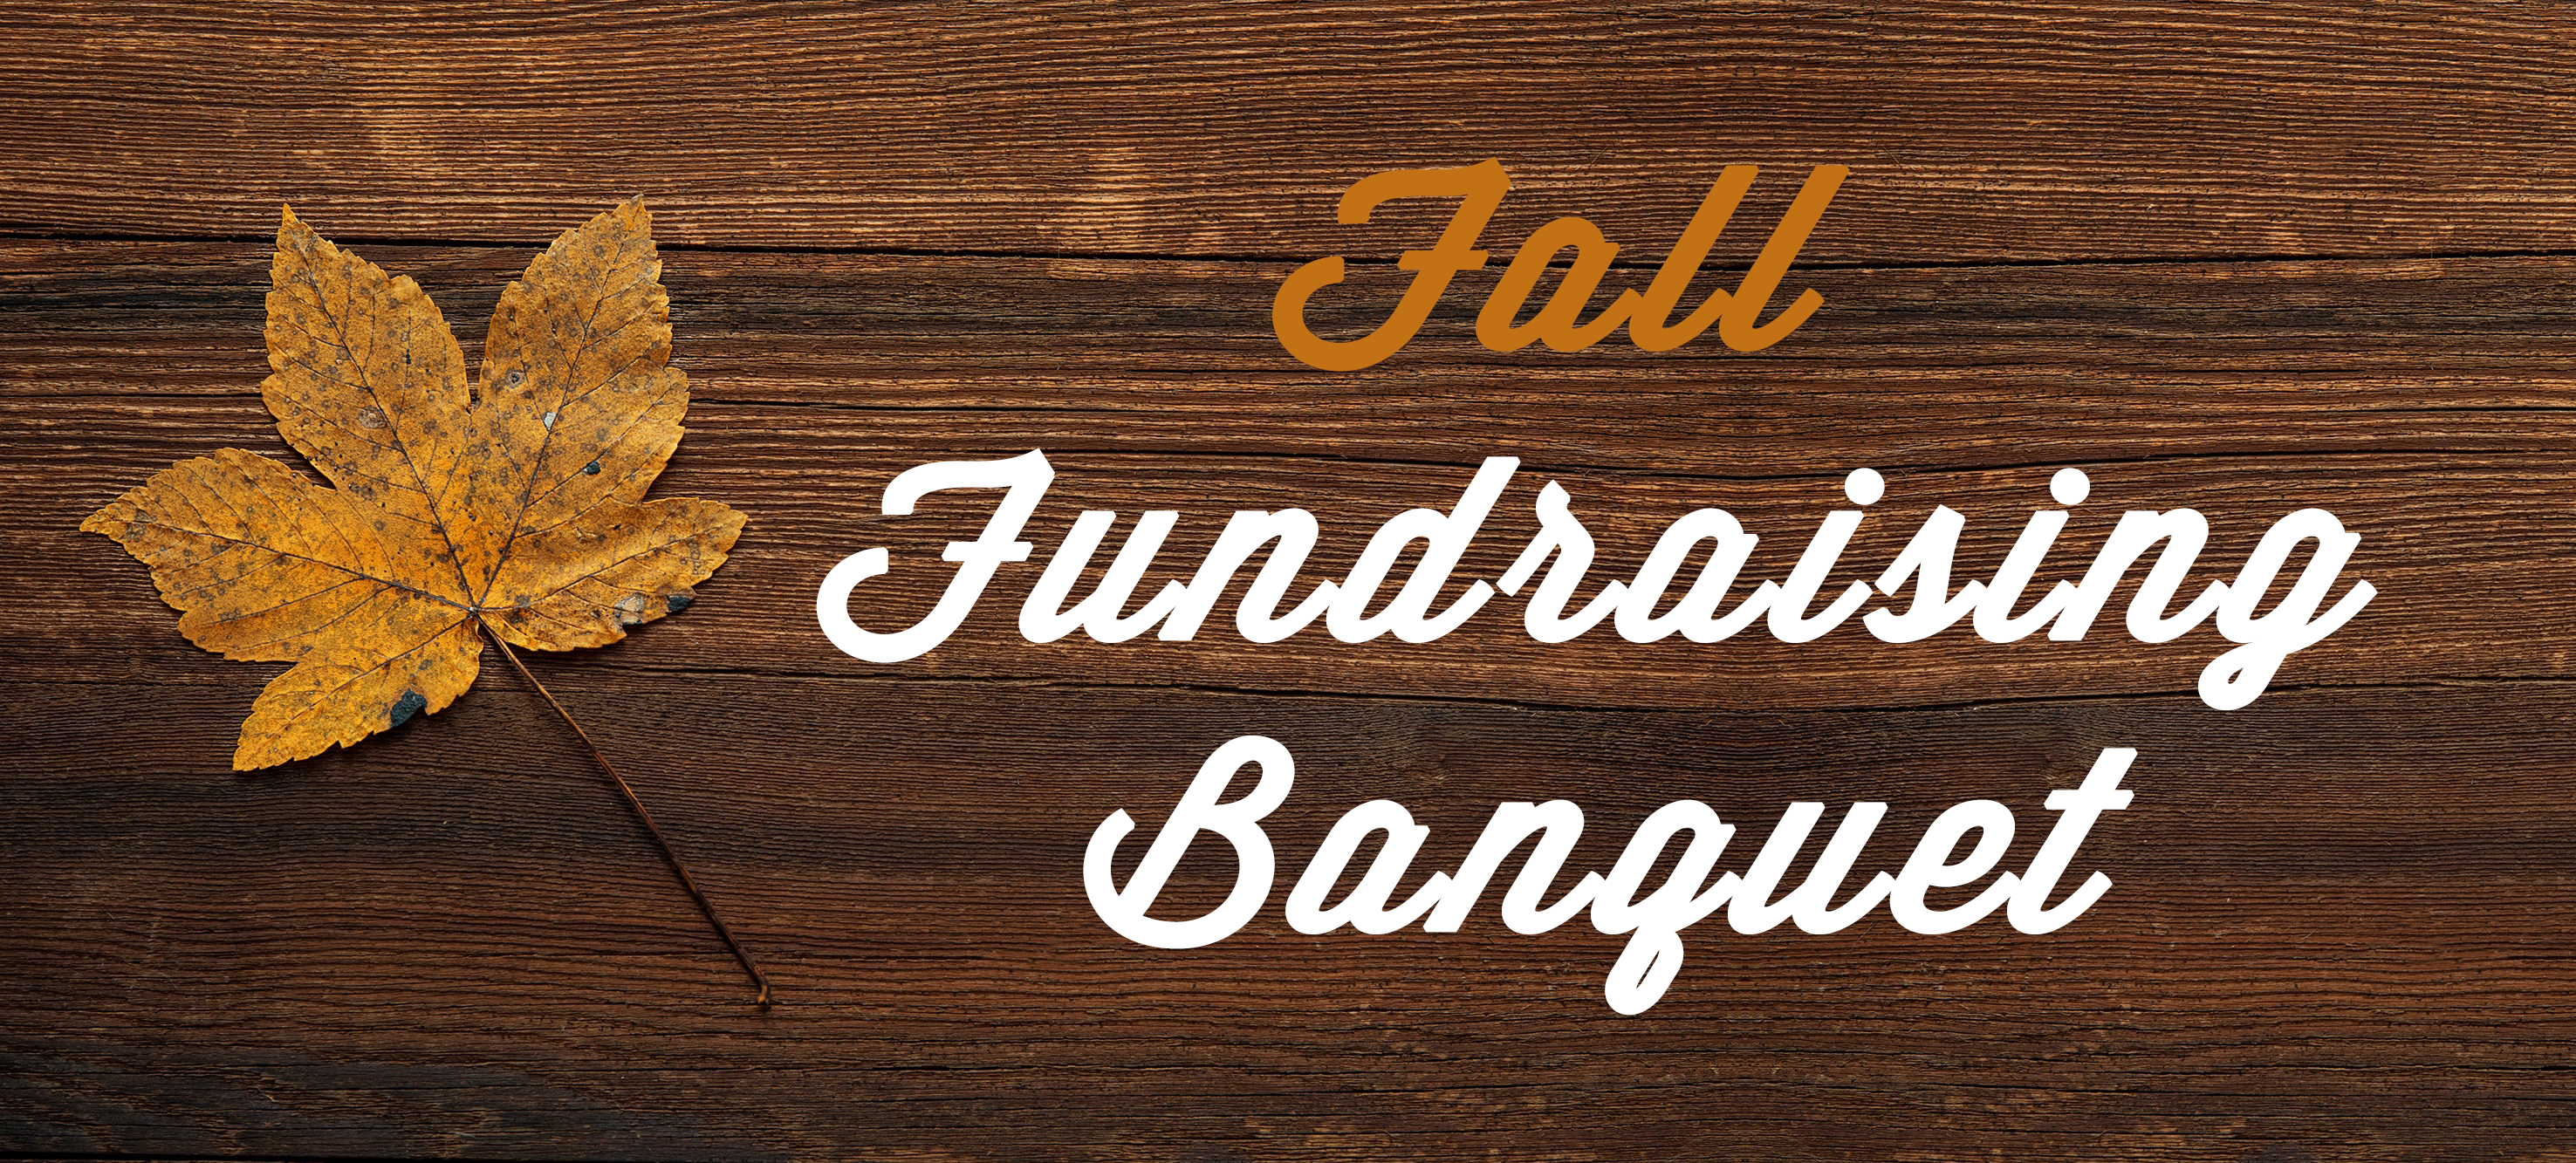 Fall Fundraising Banquet - October 13th, 2017